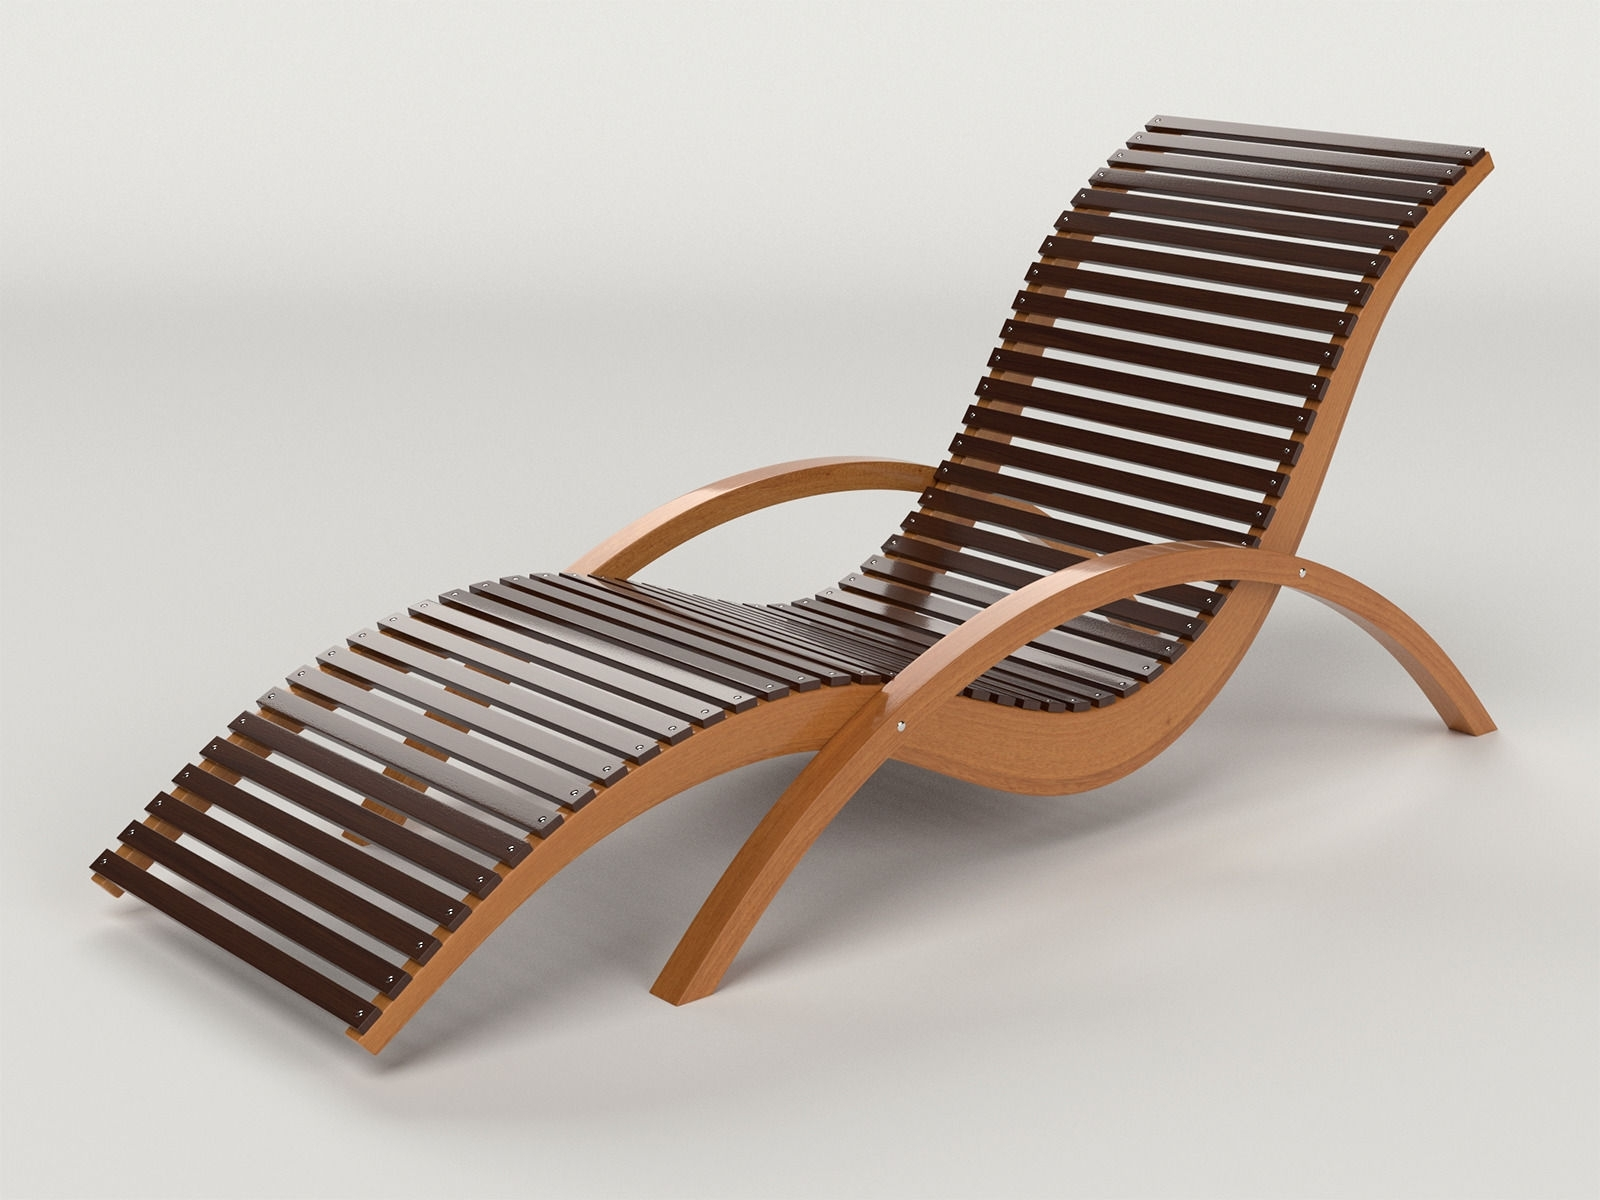 Widely Used Lounge Chair : Outdoor Mesh Chaise Lounge Chairs Outside Chaise Throughout Chaise Lounge Chairs For Backyard (View 13 of 15)